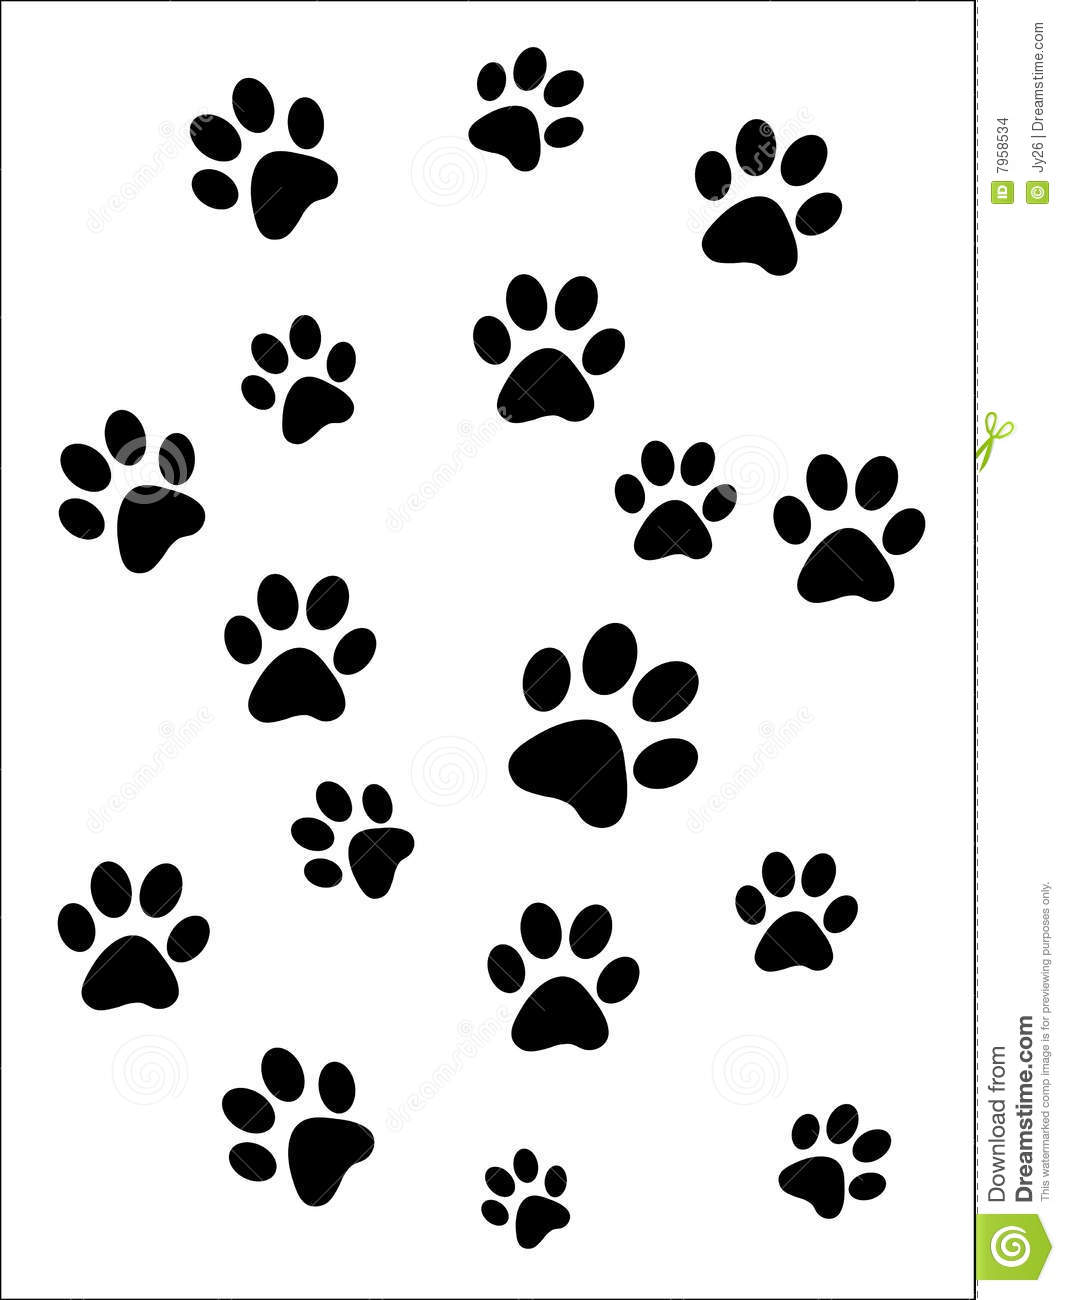 Tiger paw print background - photo#4